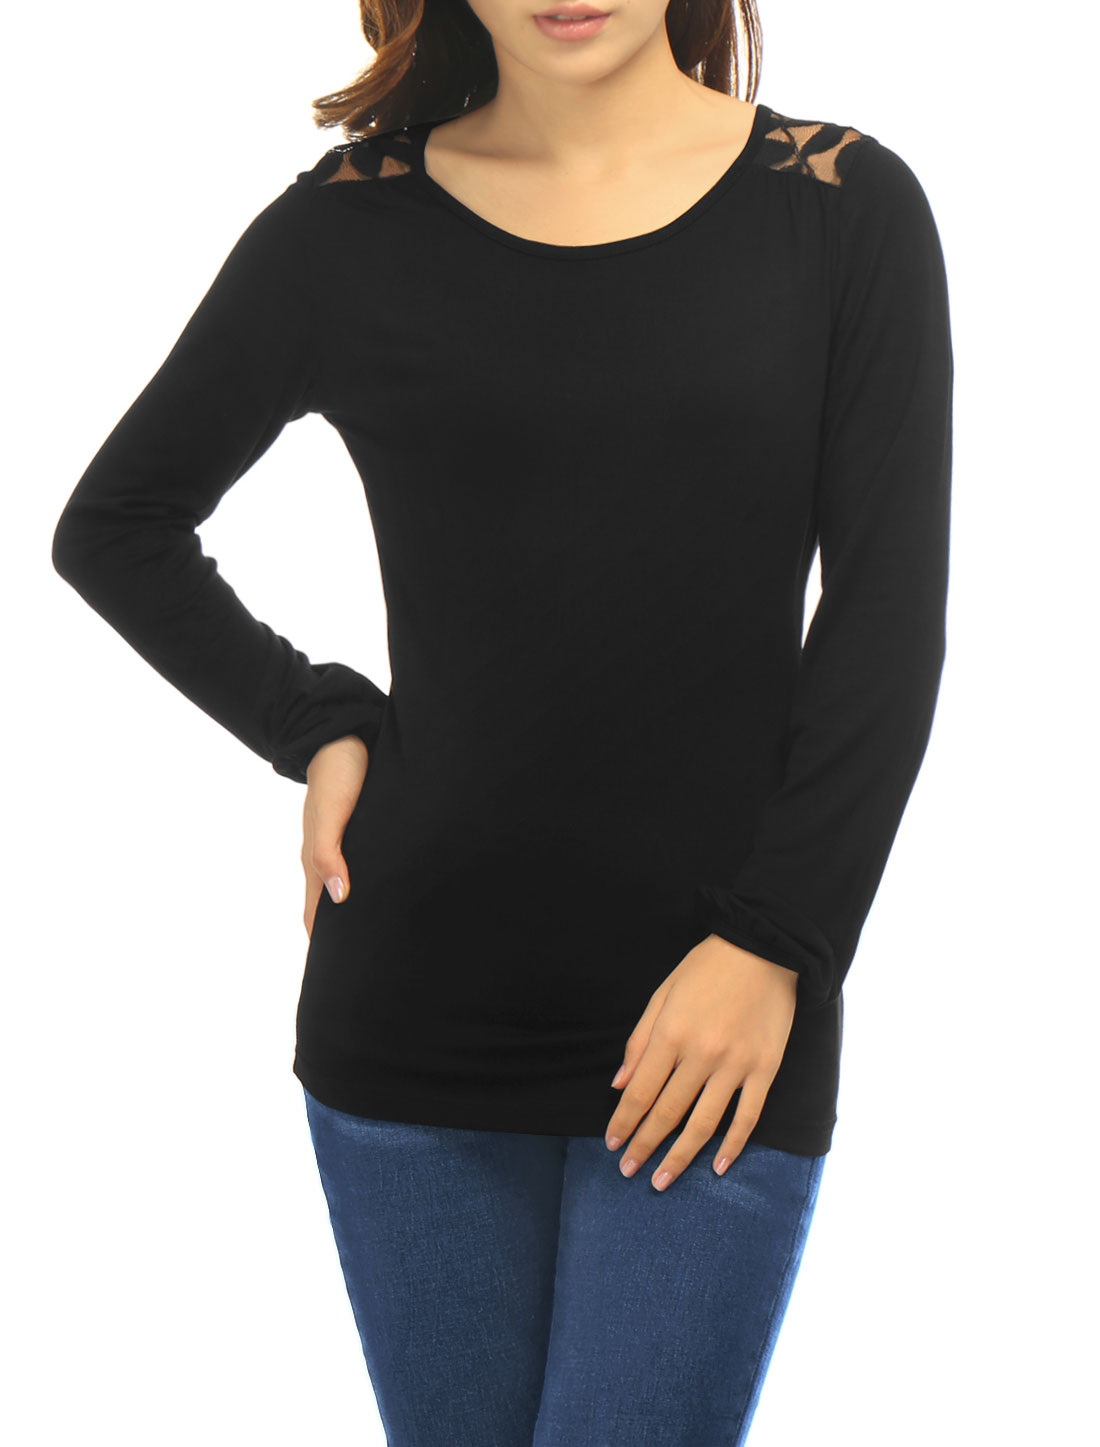 Allegra K Woman Long Sleeves Scoop Neck Lace Panel Back Top Black XL